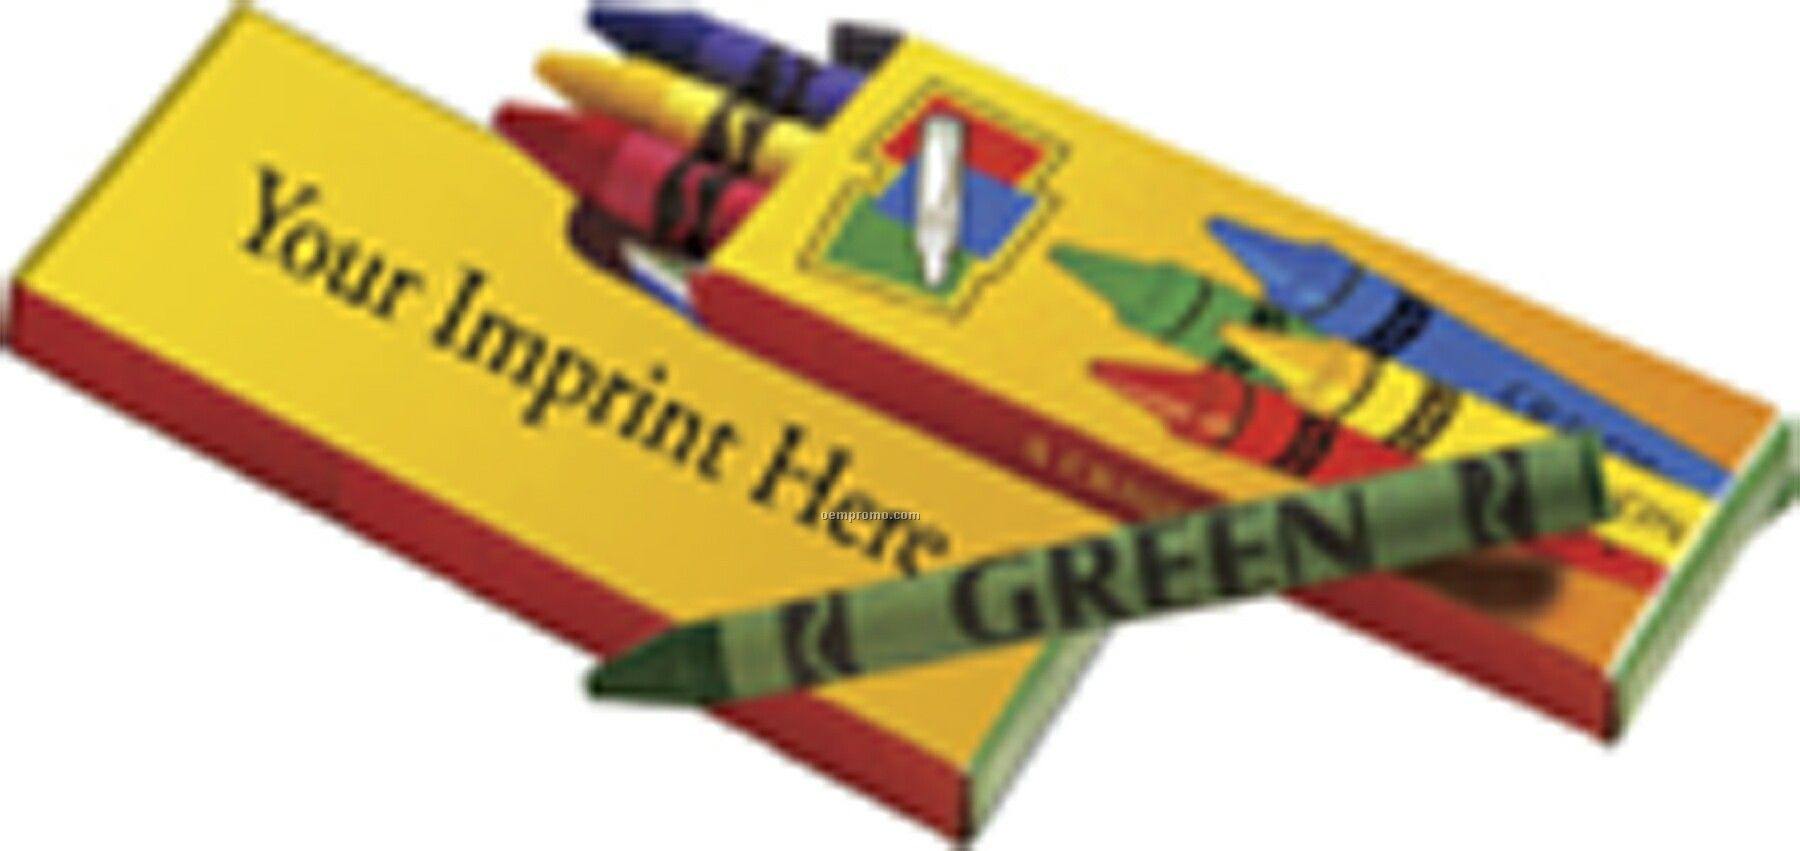 Stop Look & Learn Non-toxic Crayons - Imprinted